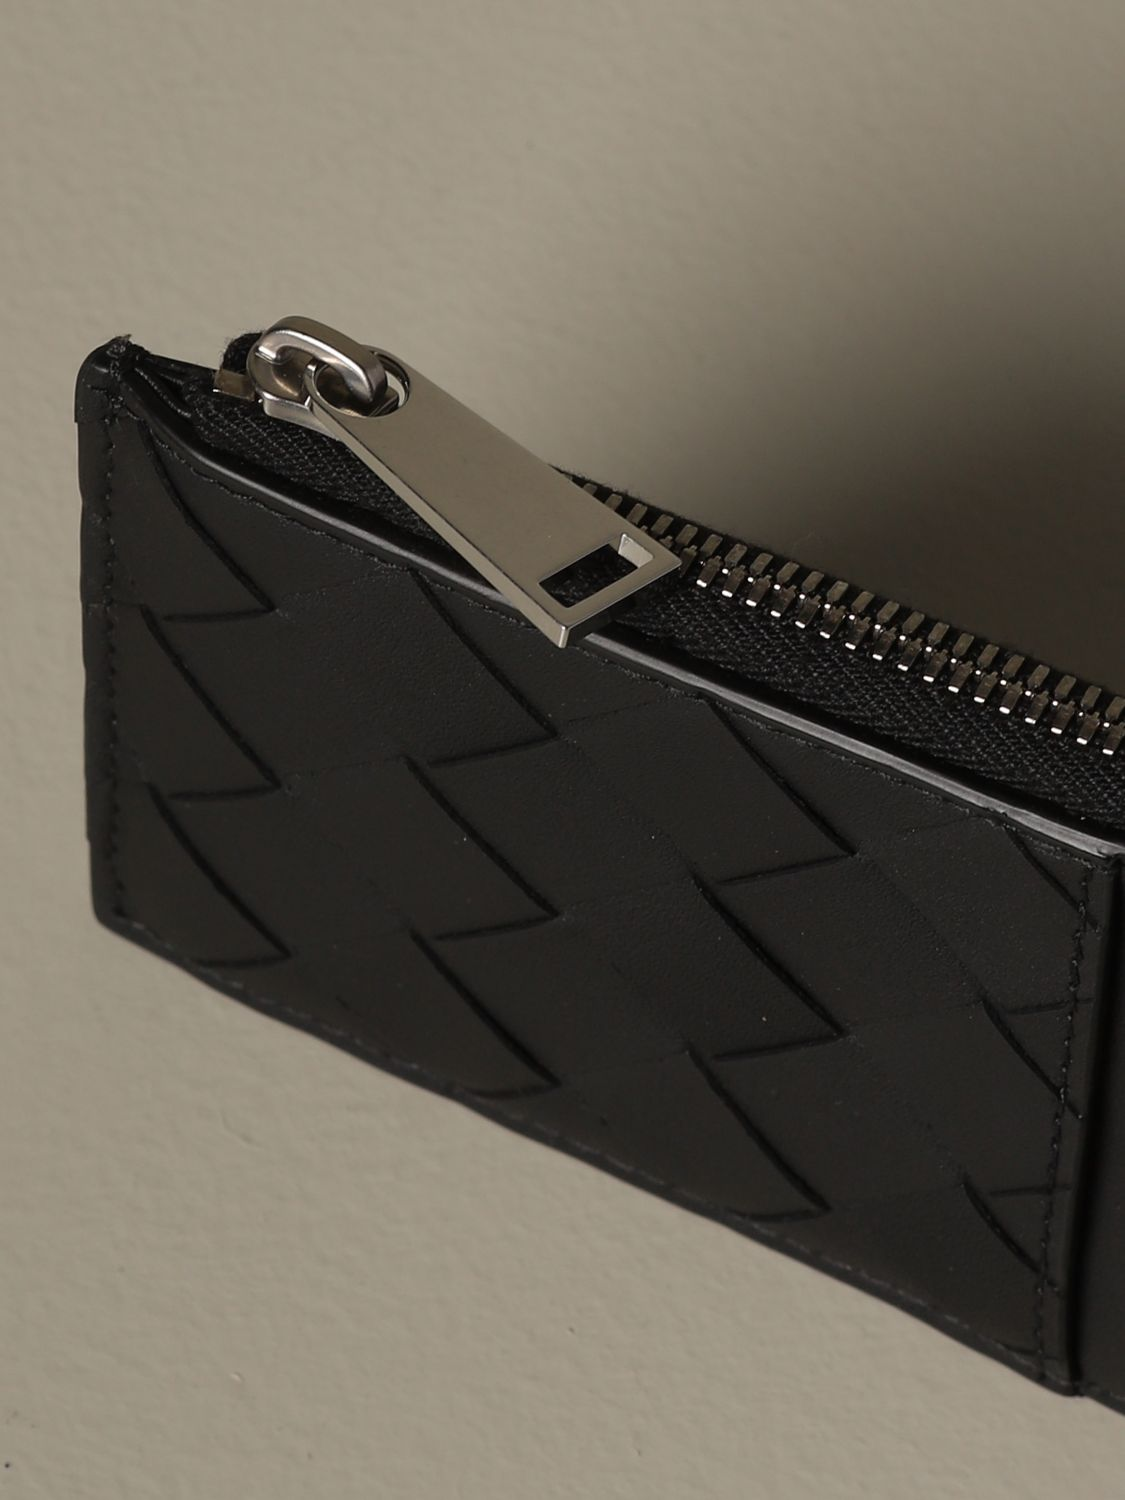 Wallet Bottega Veneta: Bottega Veneta credit card holder in woven leather 1.5 black 3